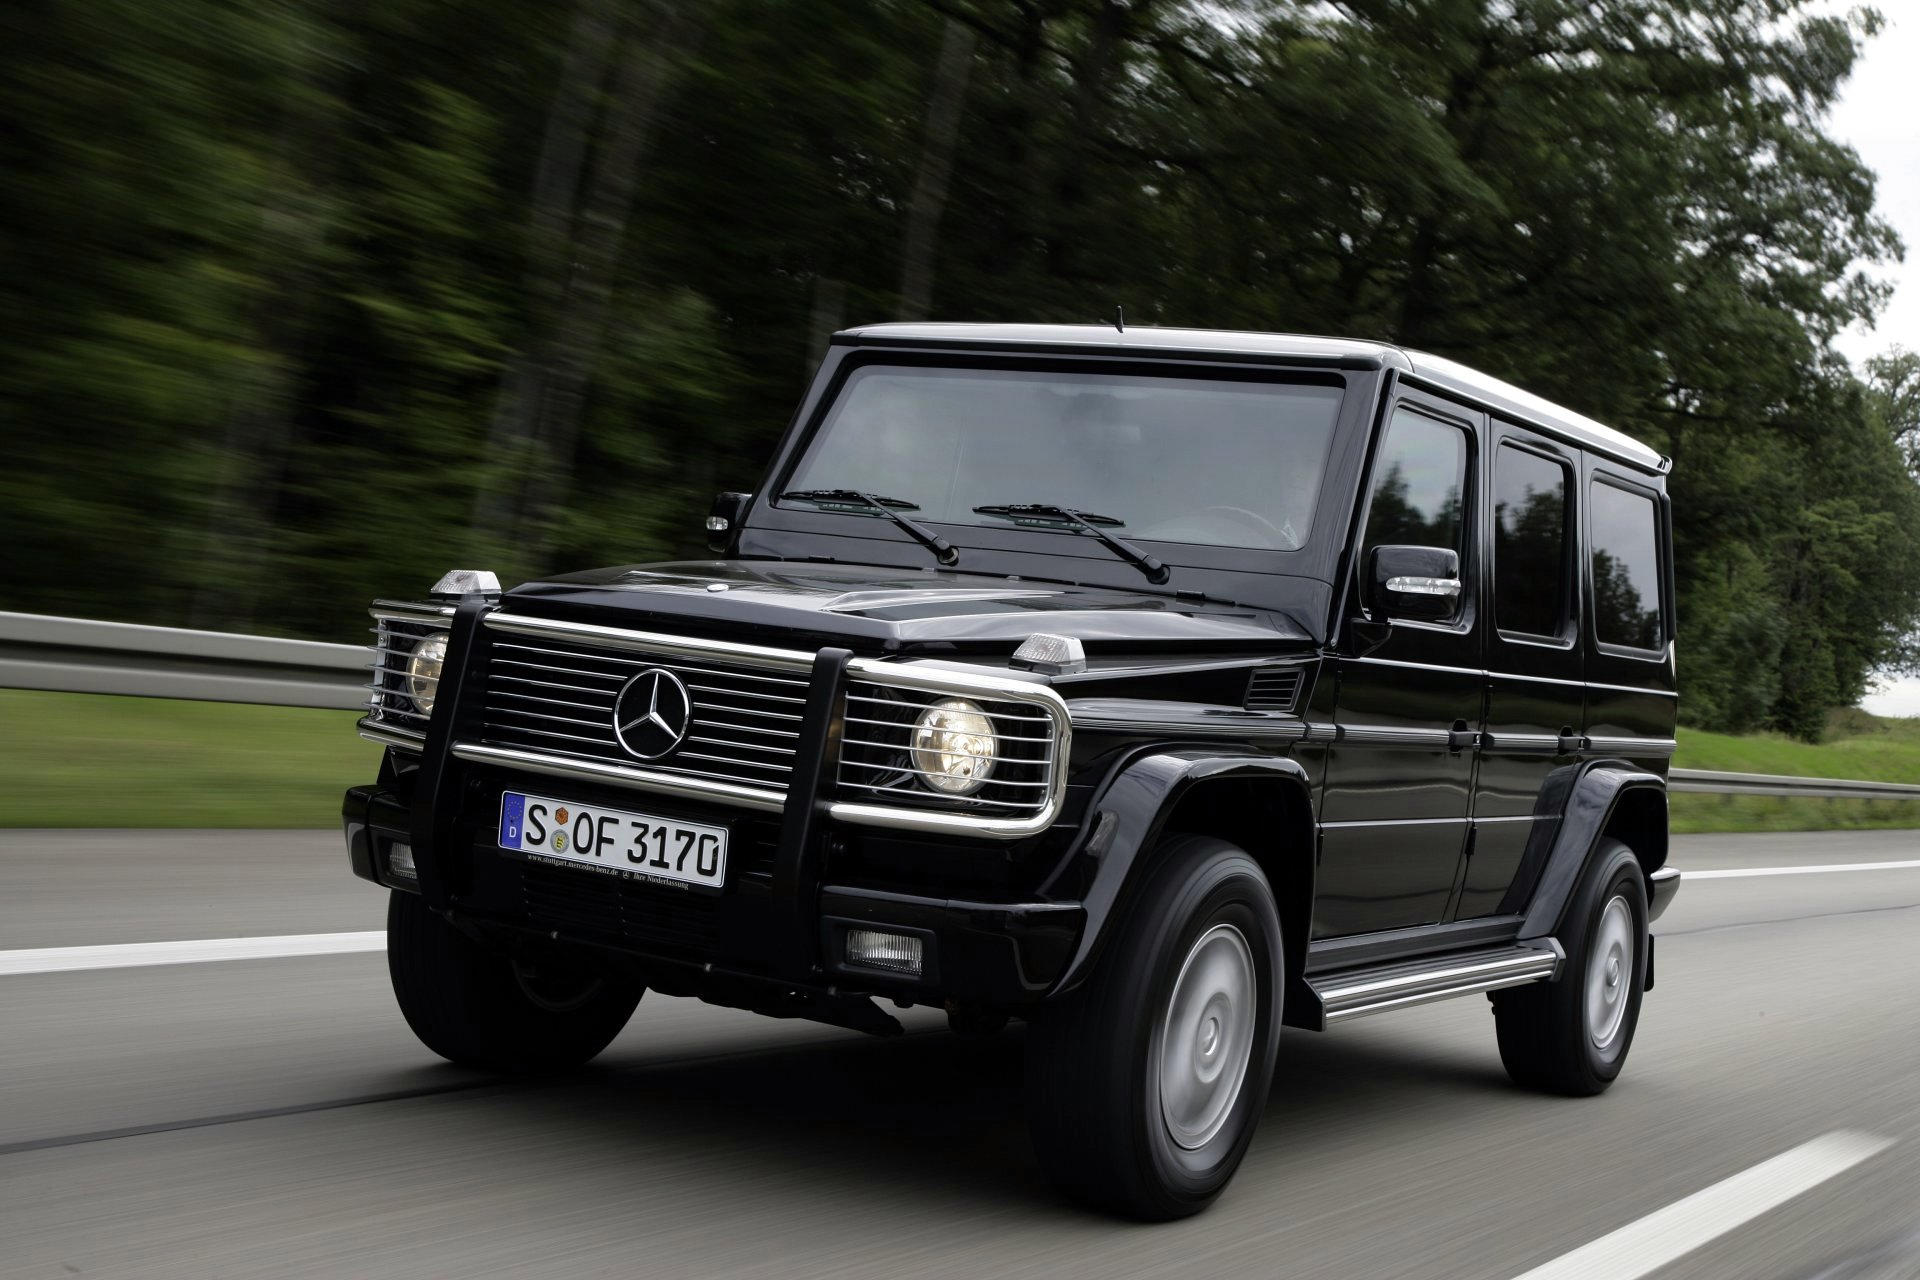 mercedes benz g klasse car technical data car specifications vehicle fuel consumption information. Black Bedroom Furniture Sets. Home Design Ideas